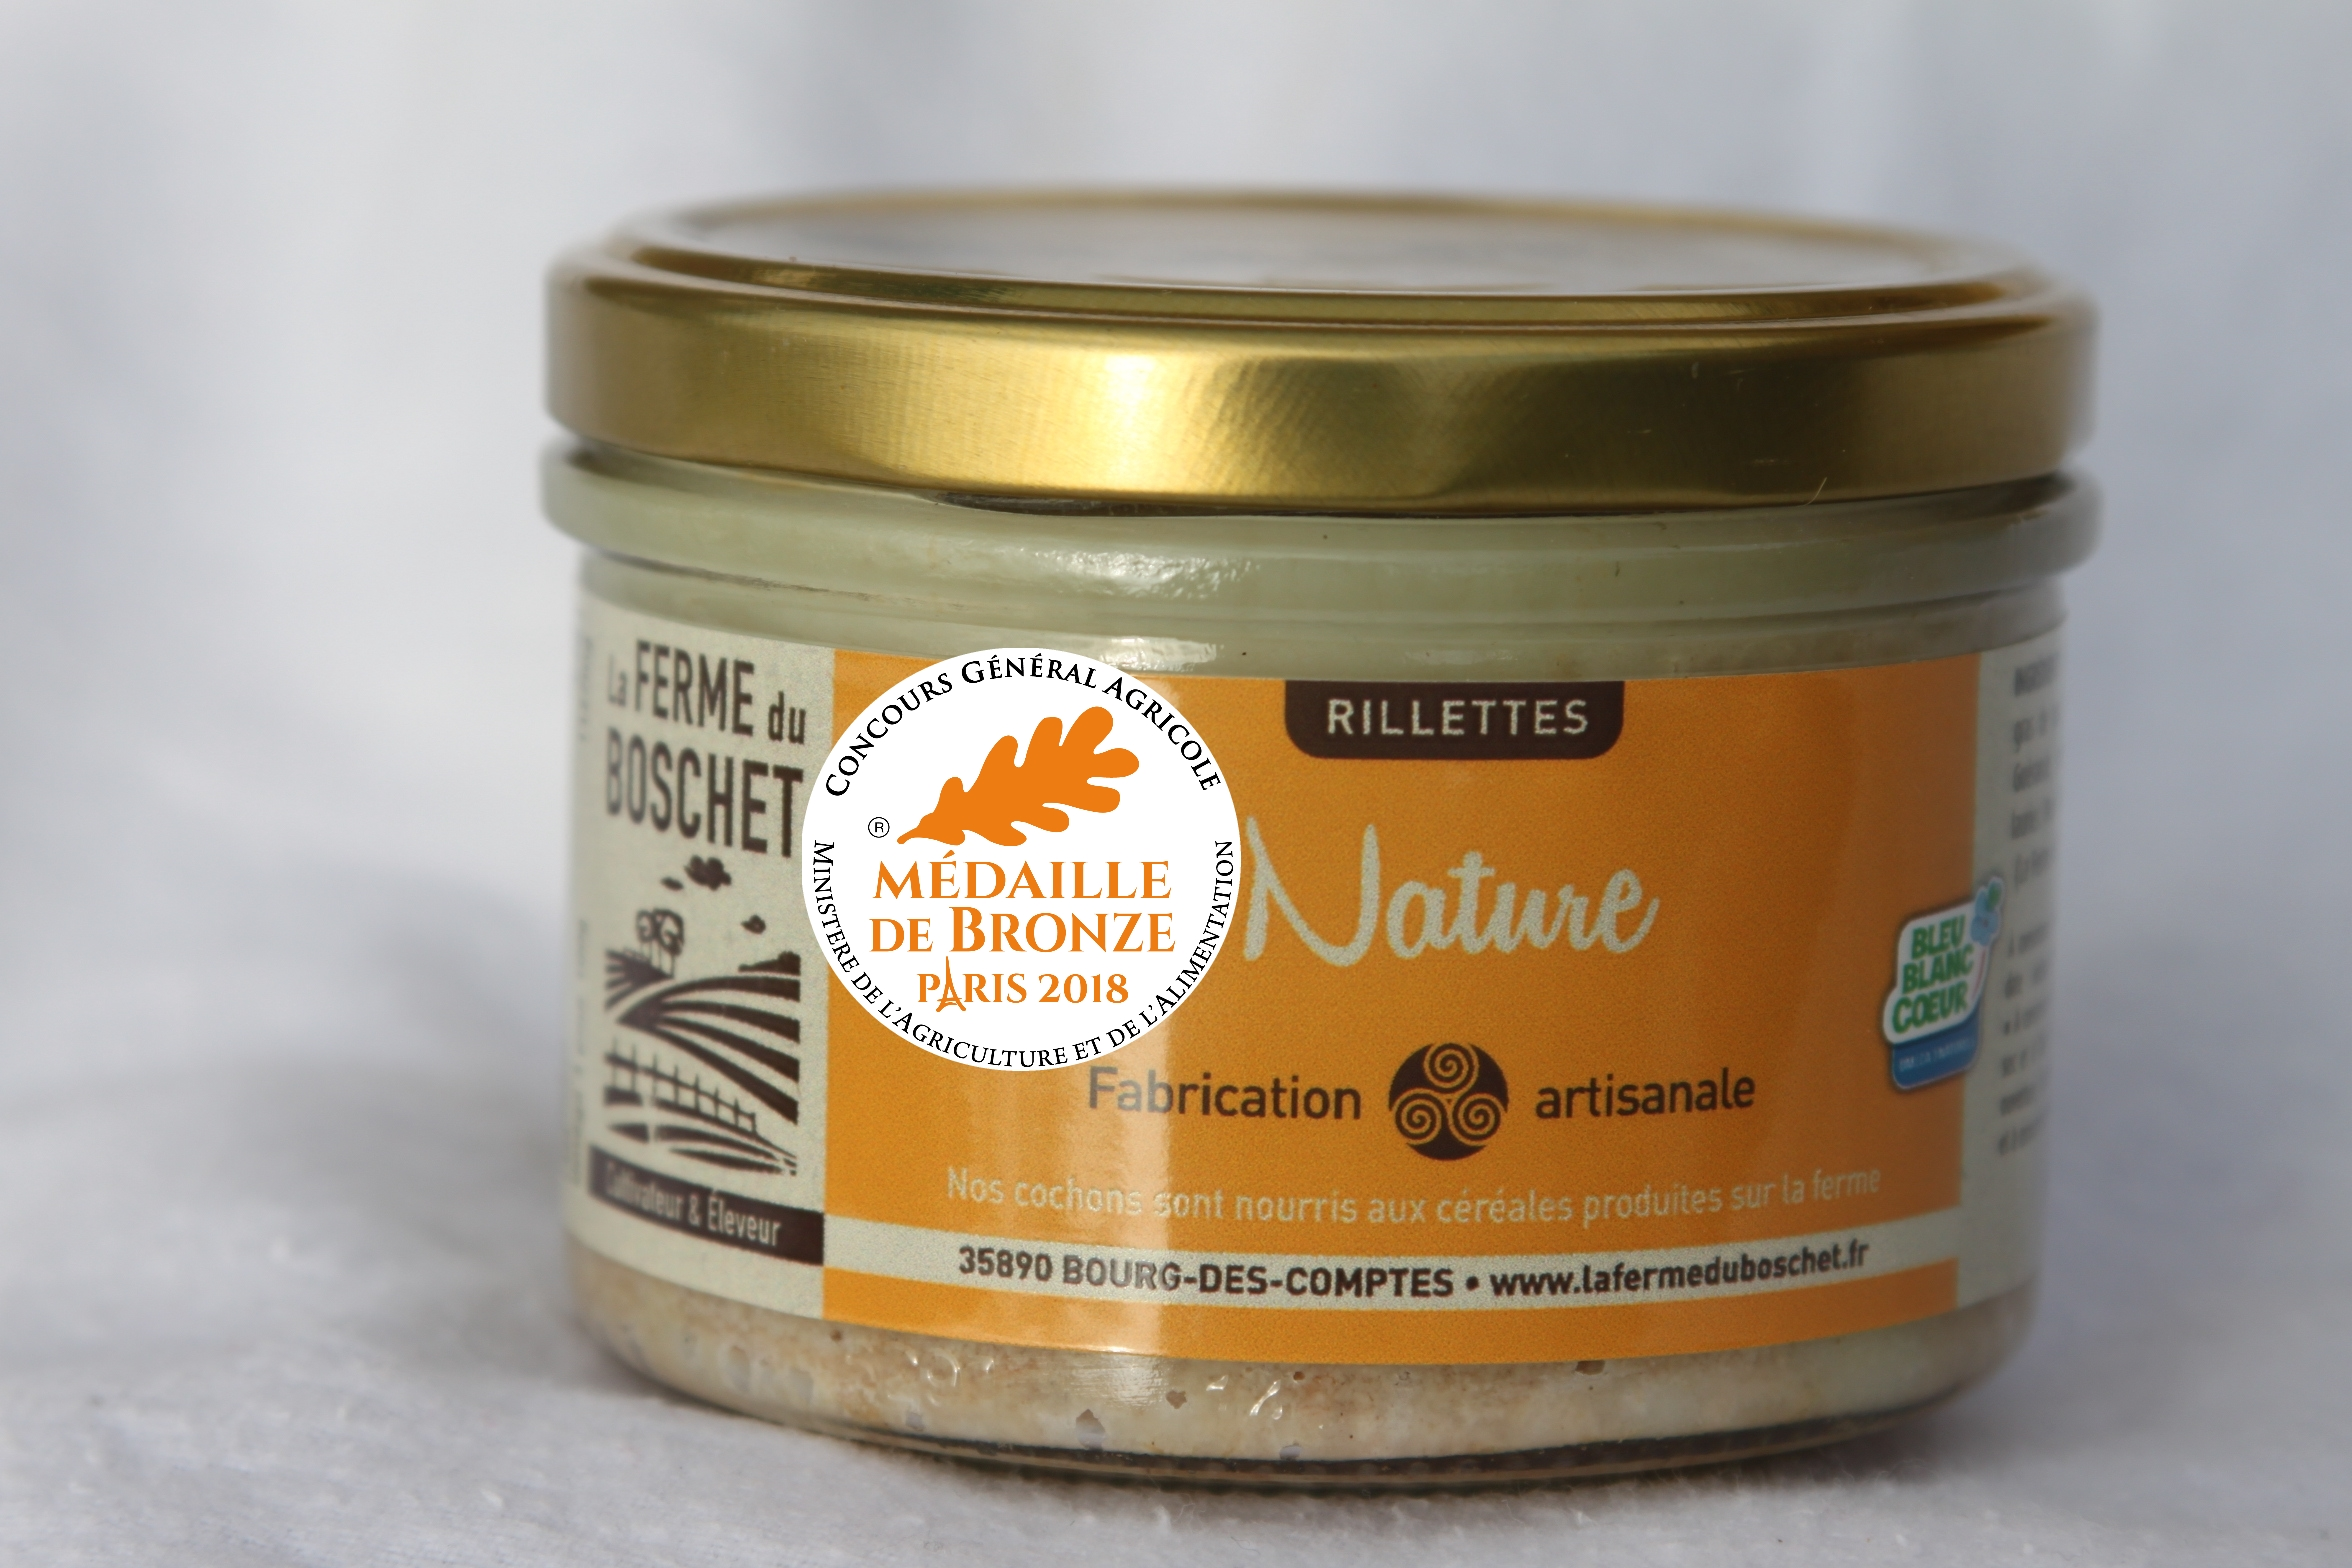 La rillette nature récompensée au salon Paris 2018